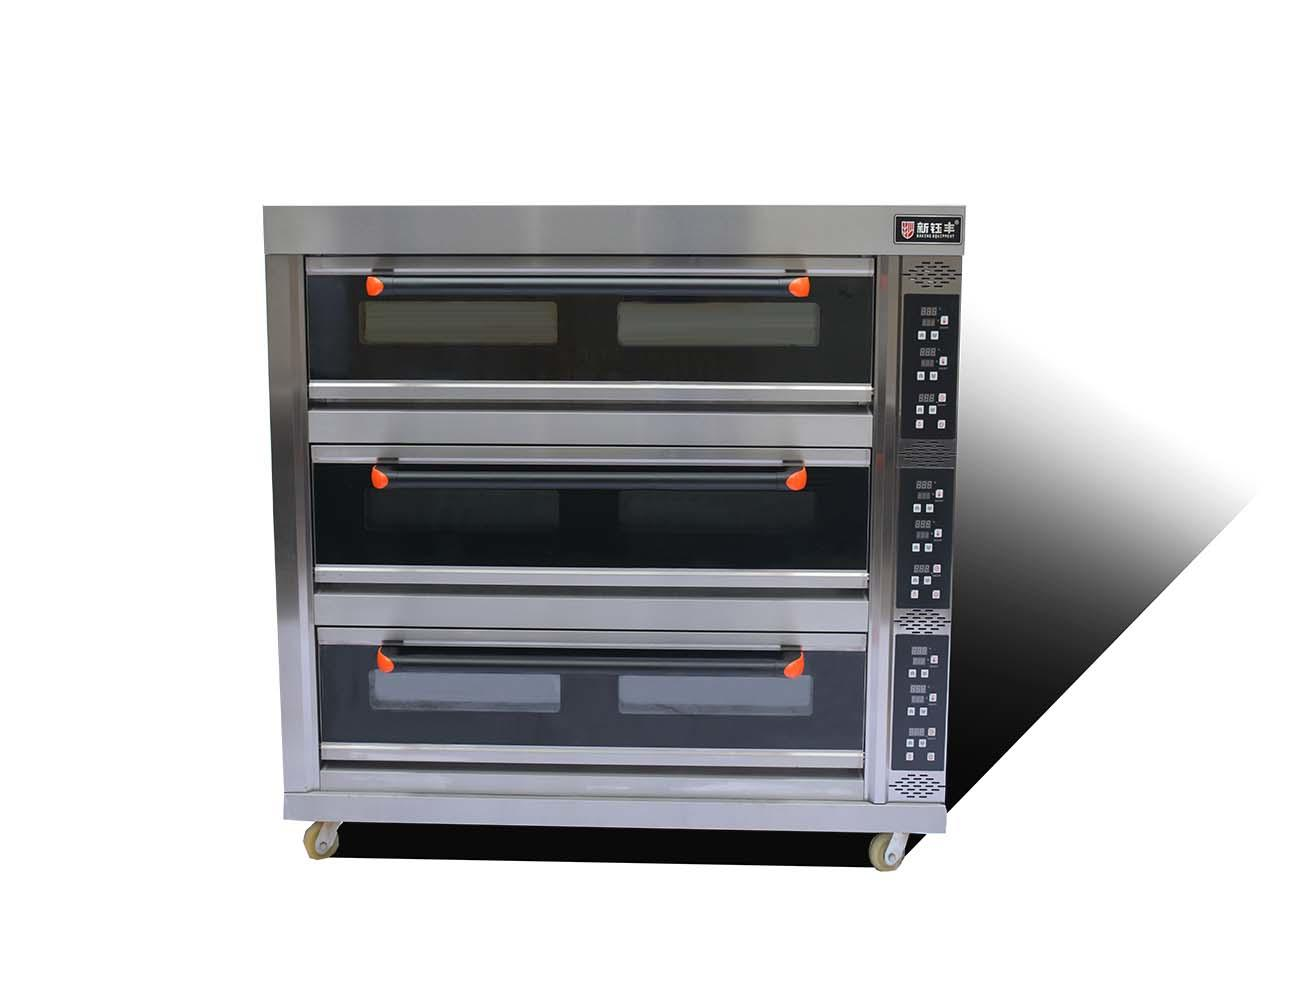 electric high temperature oven 3 deck 9 trays bread electric baking oven